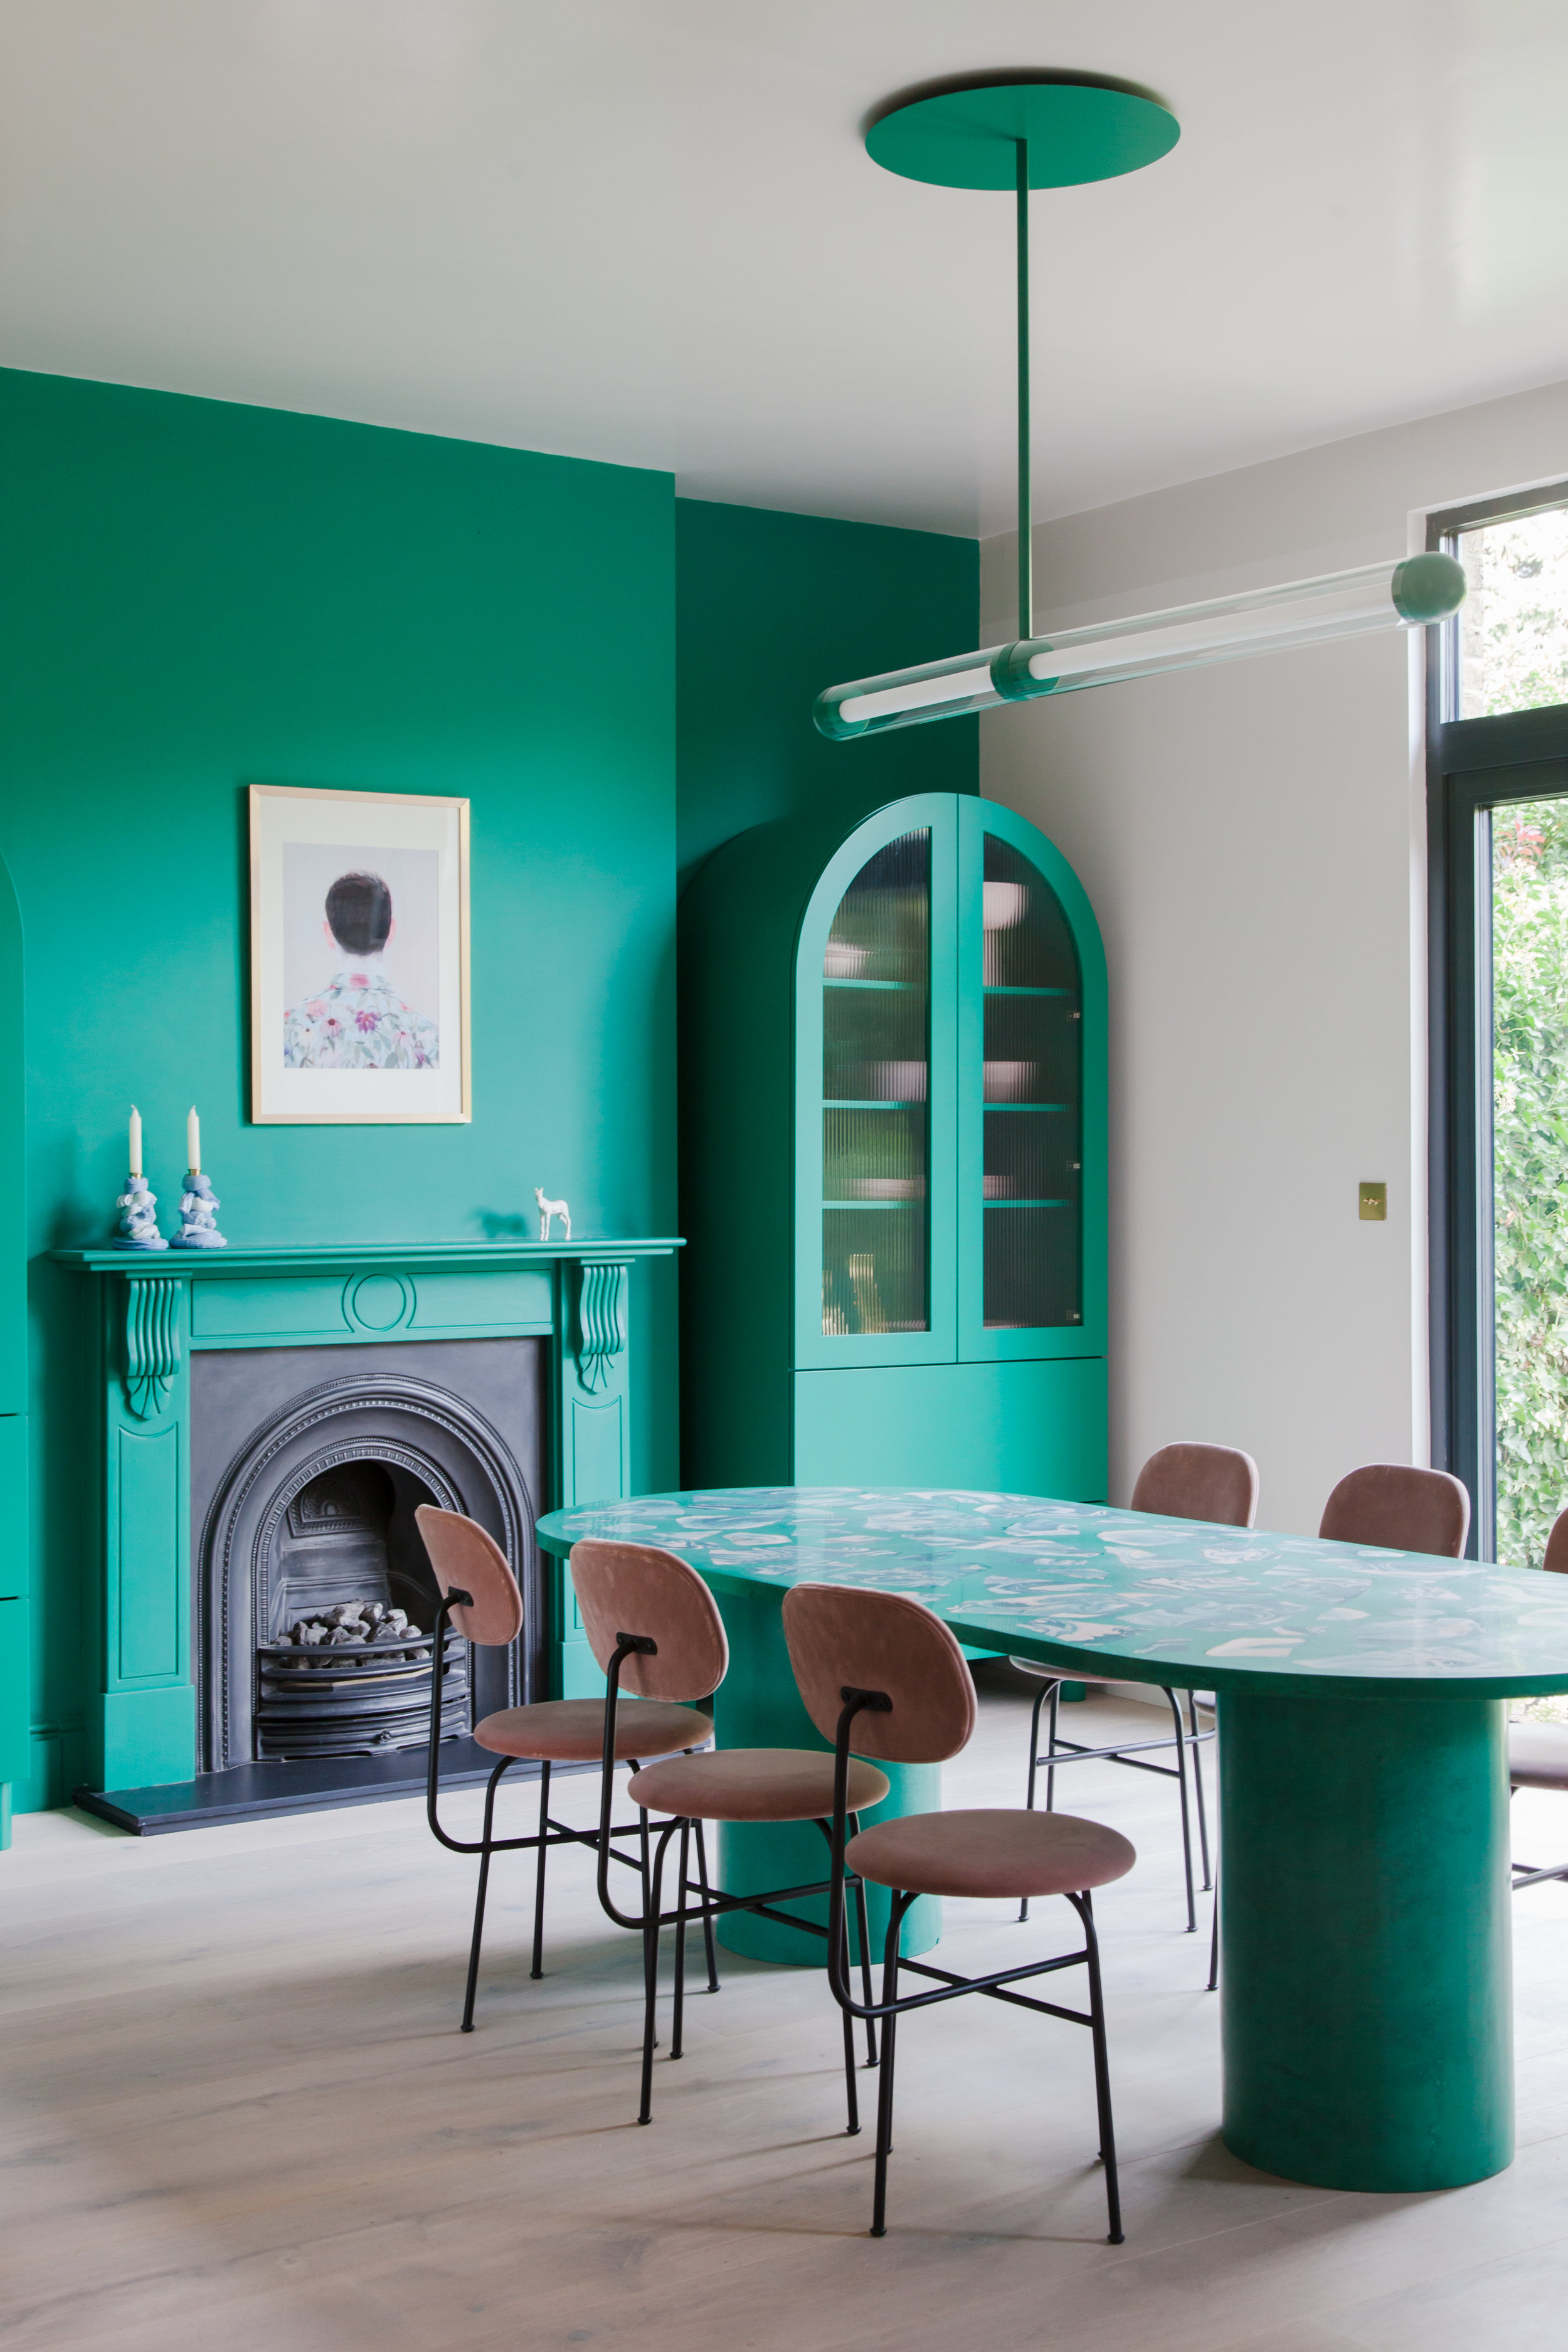 - As a contrast to the pale tones in the kitchen, the dining area is unapologetically bold, with vibrant green paint from Mylands used on the back wall and matched by freestanding larder units. In the middle of the room, the distinctive Jesmonite dining table by surface designer Olivia Aspinall brings the space together, combining that statement shade of green with accents of pink and tonal teal. We're also obsessed with those Menu dining chairs!Image credit: Megan Taylor Photography for John Lewis of Hungerford